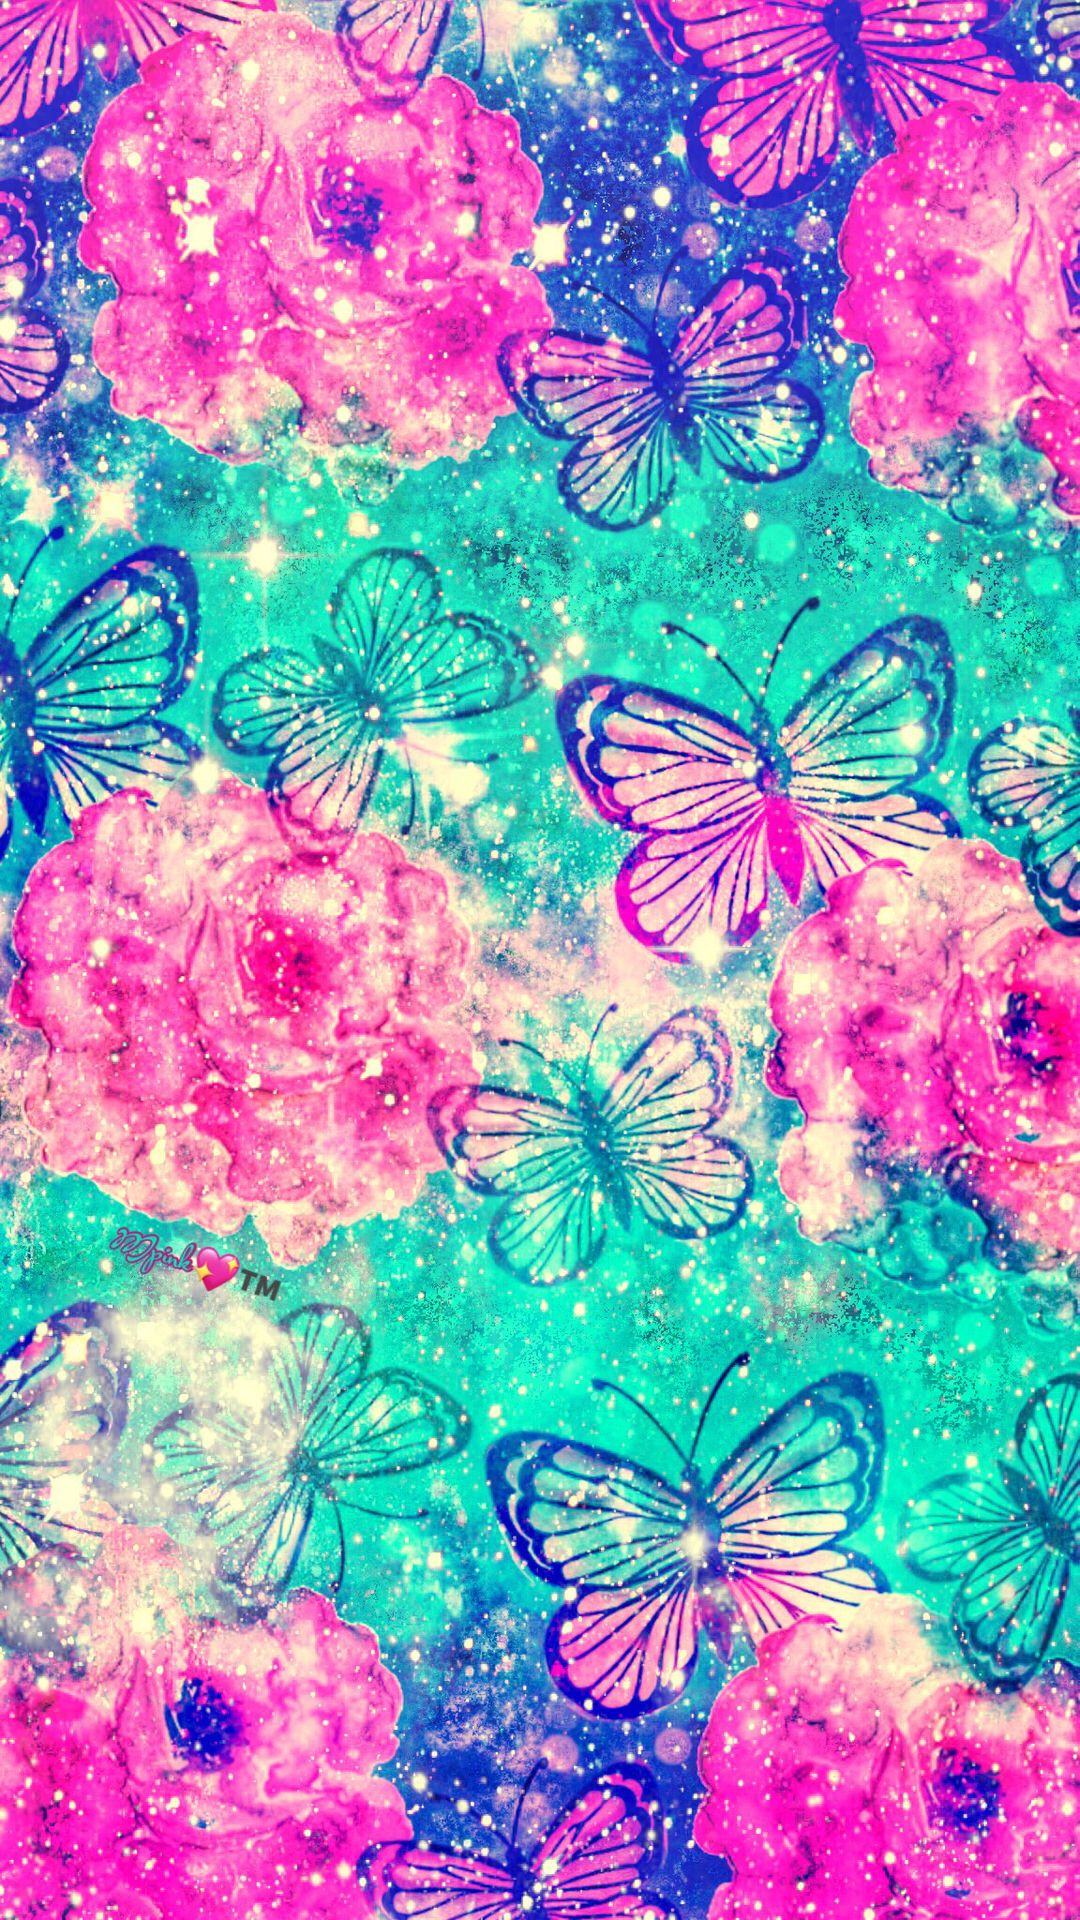 Wallpaper~♡ | Butterfly wallpaper, Iphone wallpaper ...